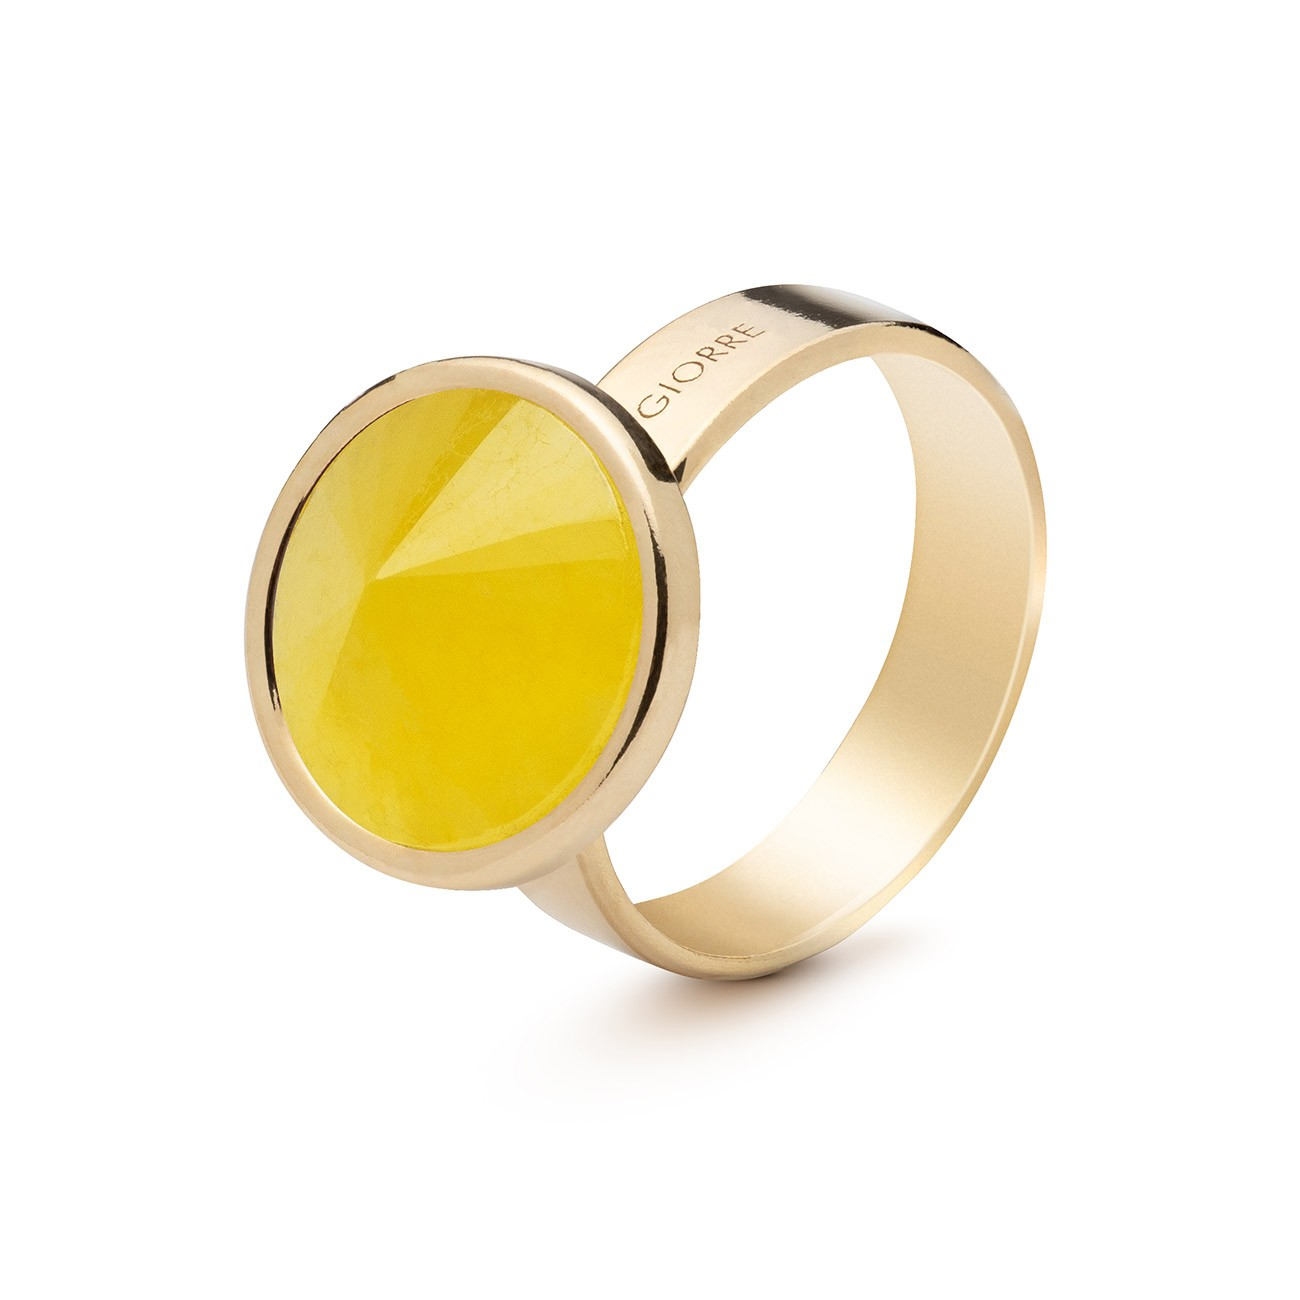 Ring with round natural stone, 925